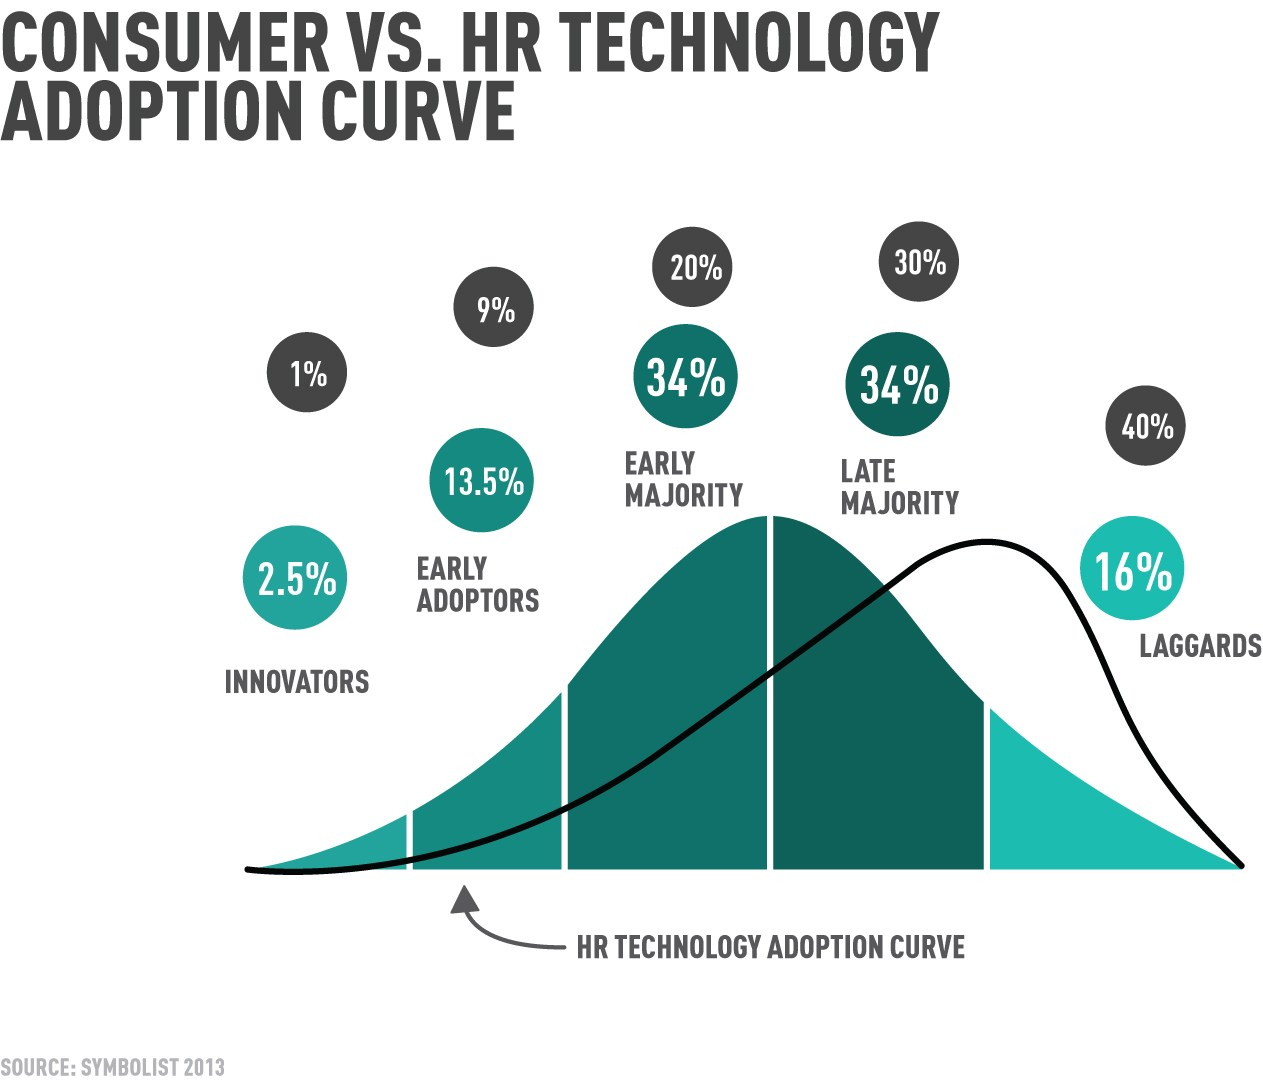 Hr technology adoption, adopting HR technology HR technology implementation